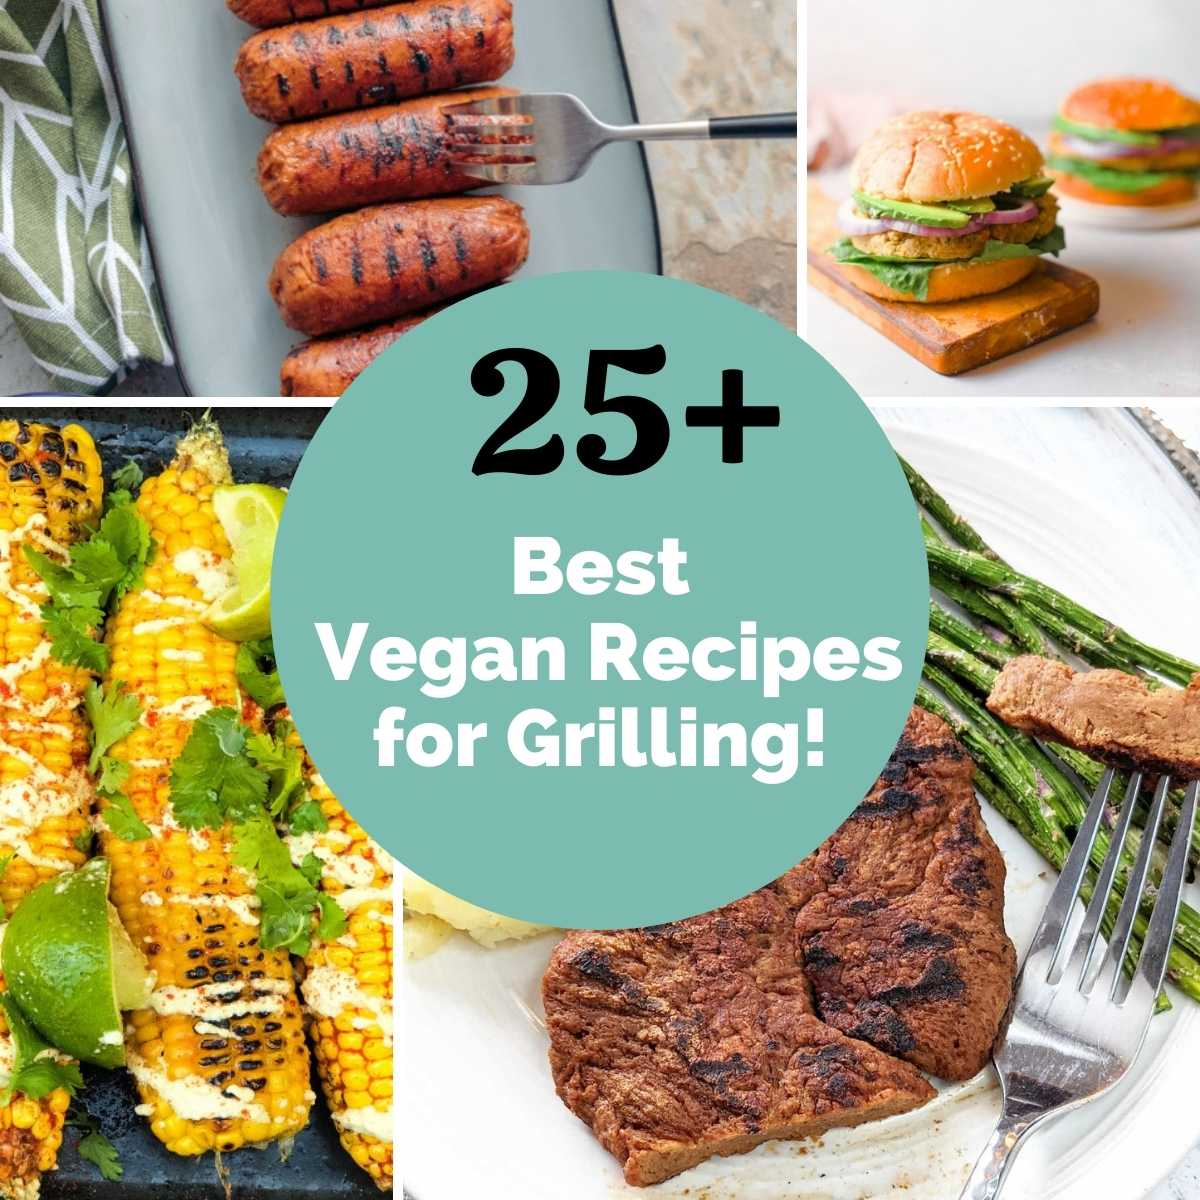 Collage of vegan recipes for grilling.